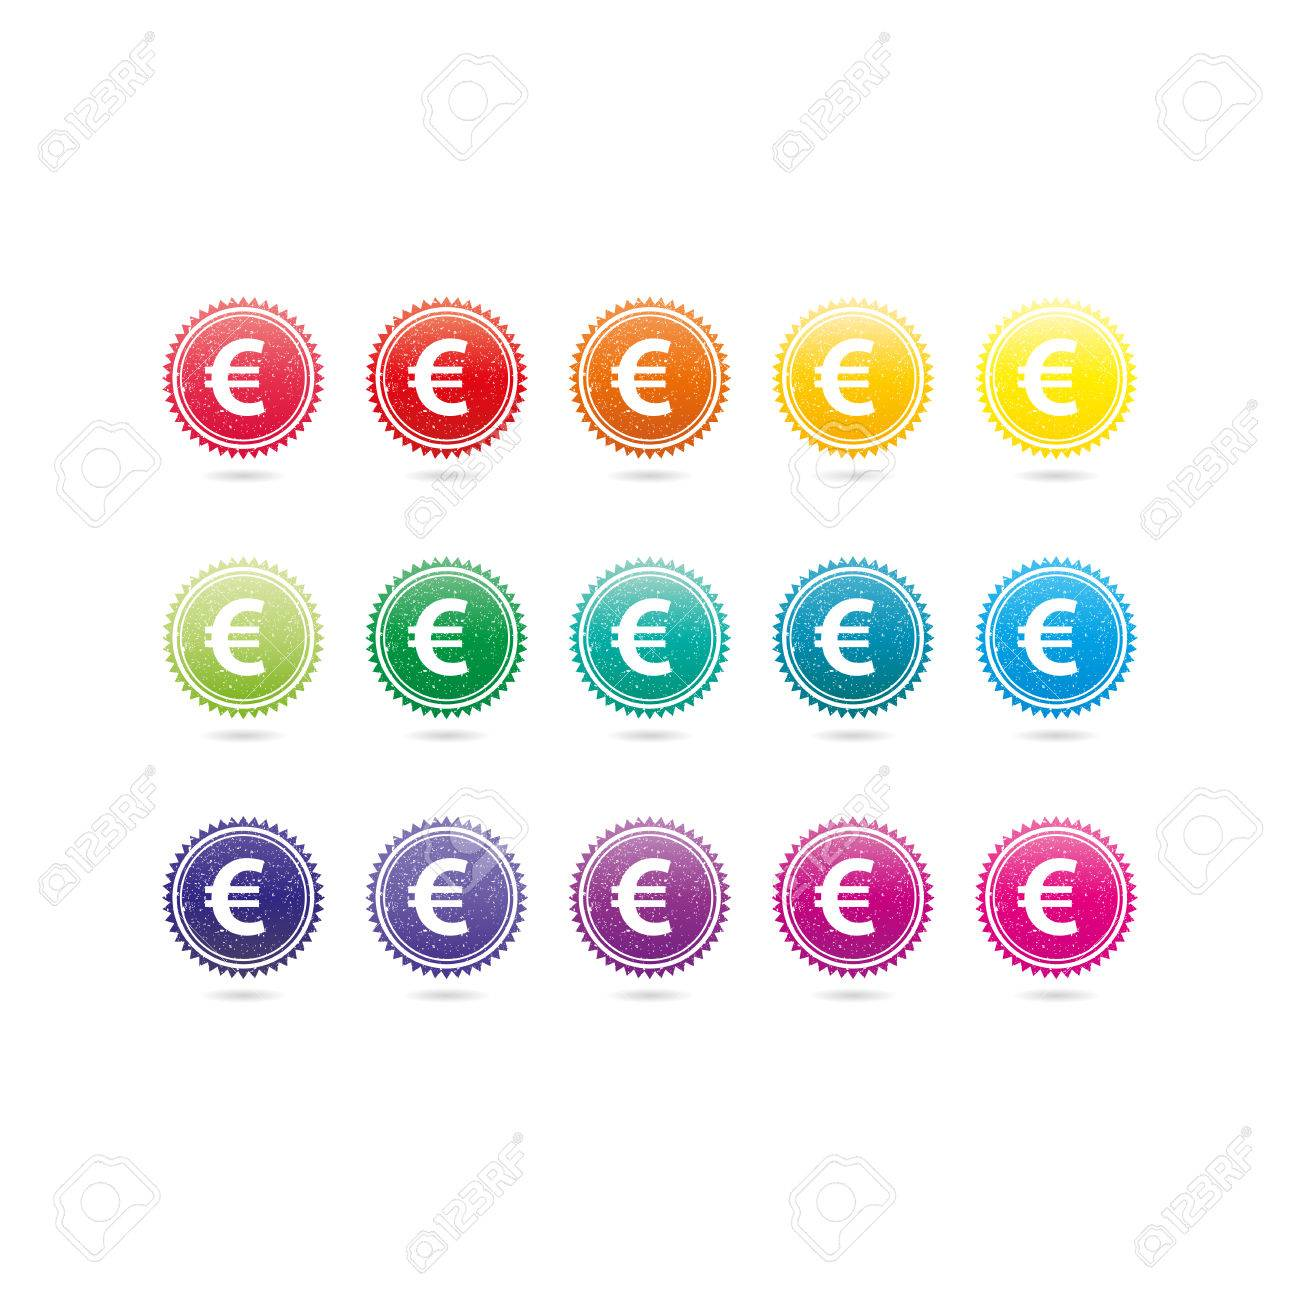 Euro currency grunge symbols. Colorful hipster style stamp badge signs. Vector illustration graphic template isolated on white background. - 46791302